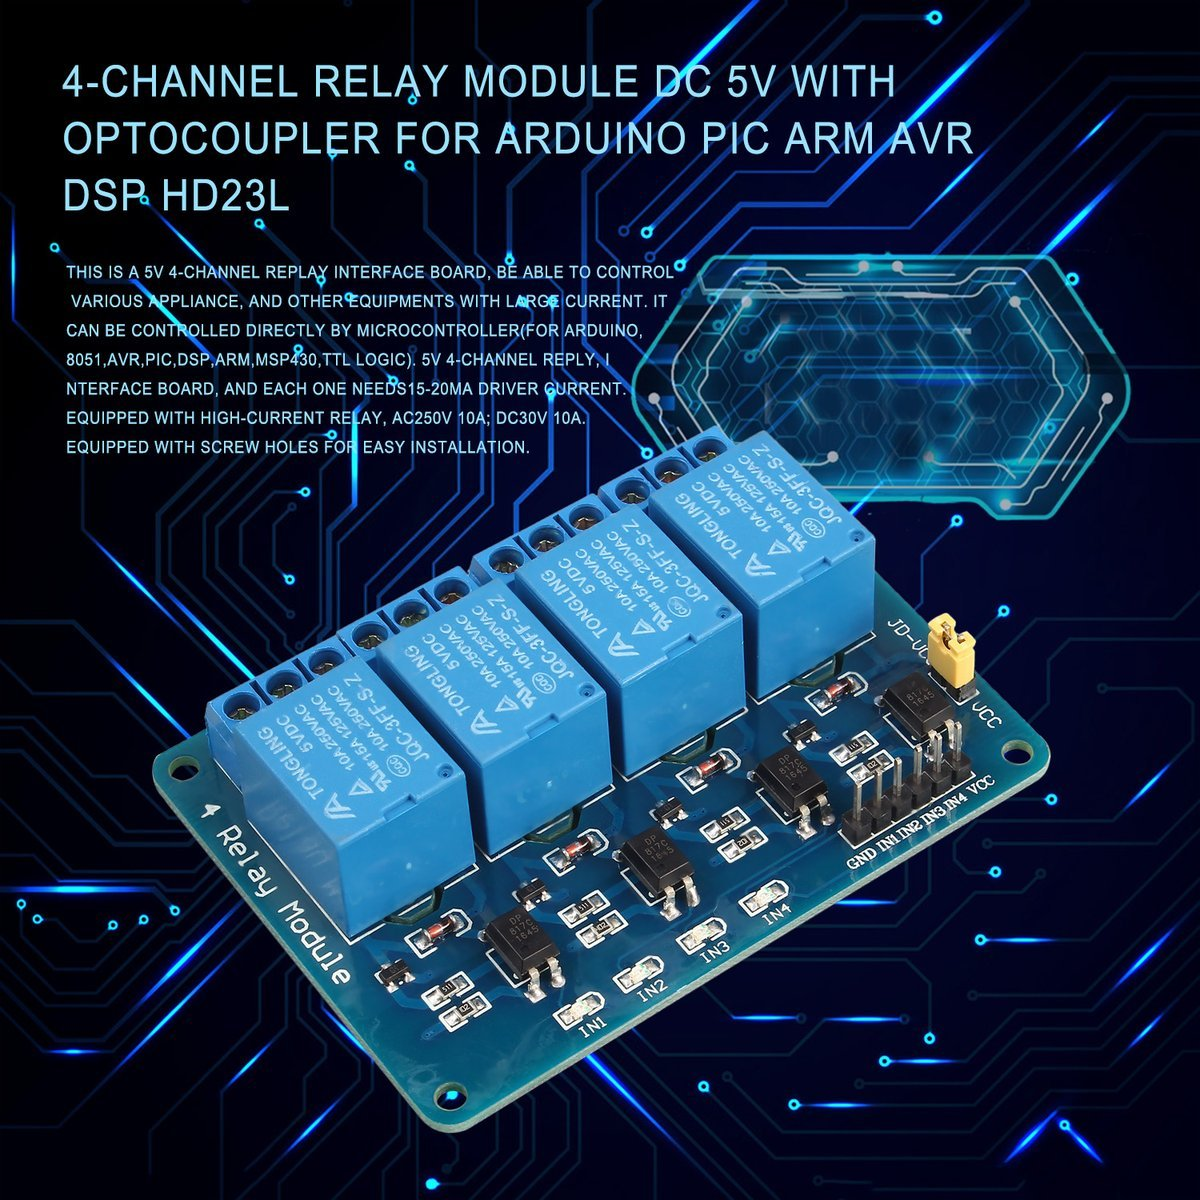 Mazur 4 Channel Relay Module Dc 5v With Optocoupler For Pic Arm Avr Circuit Diagram Dsp Hd23l Popular New Hotcolorblue Diy Tools